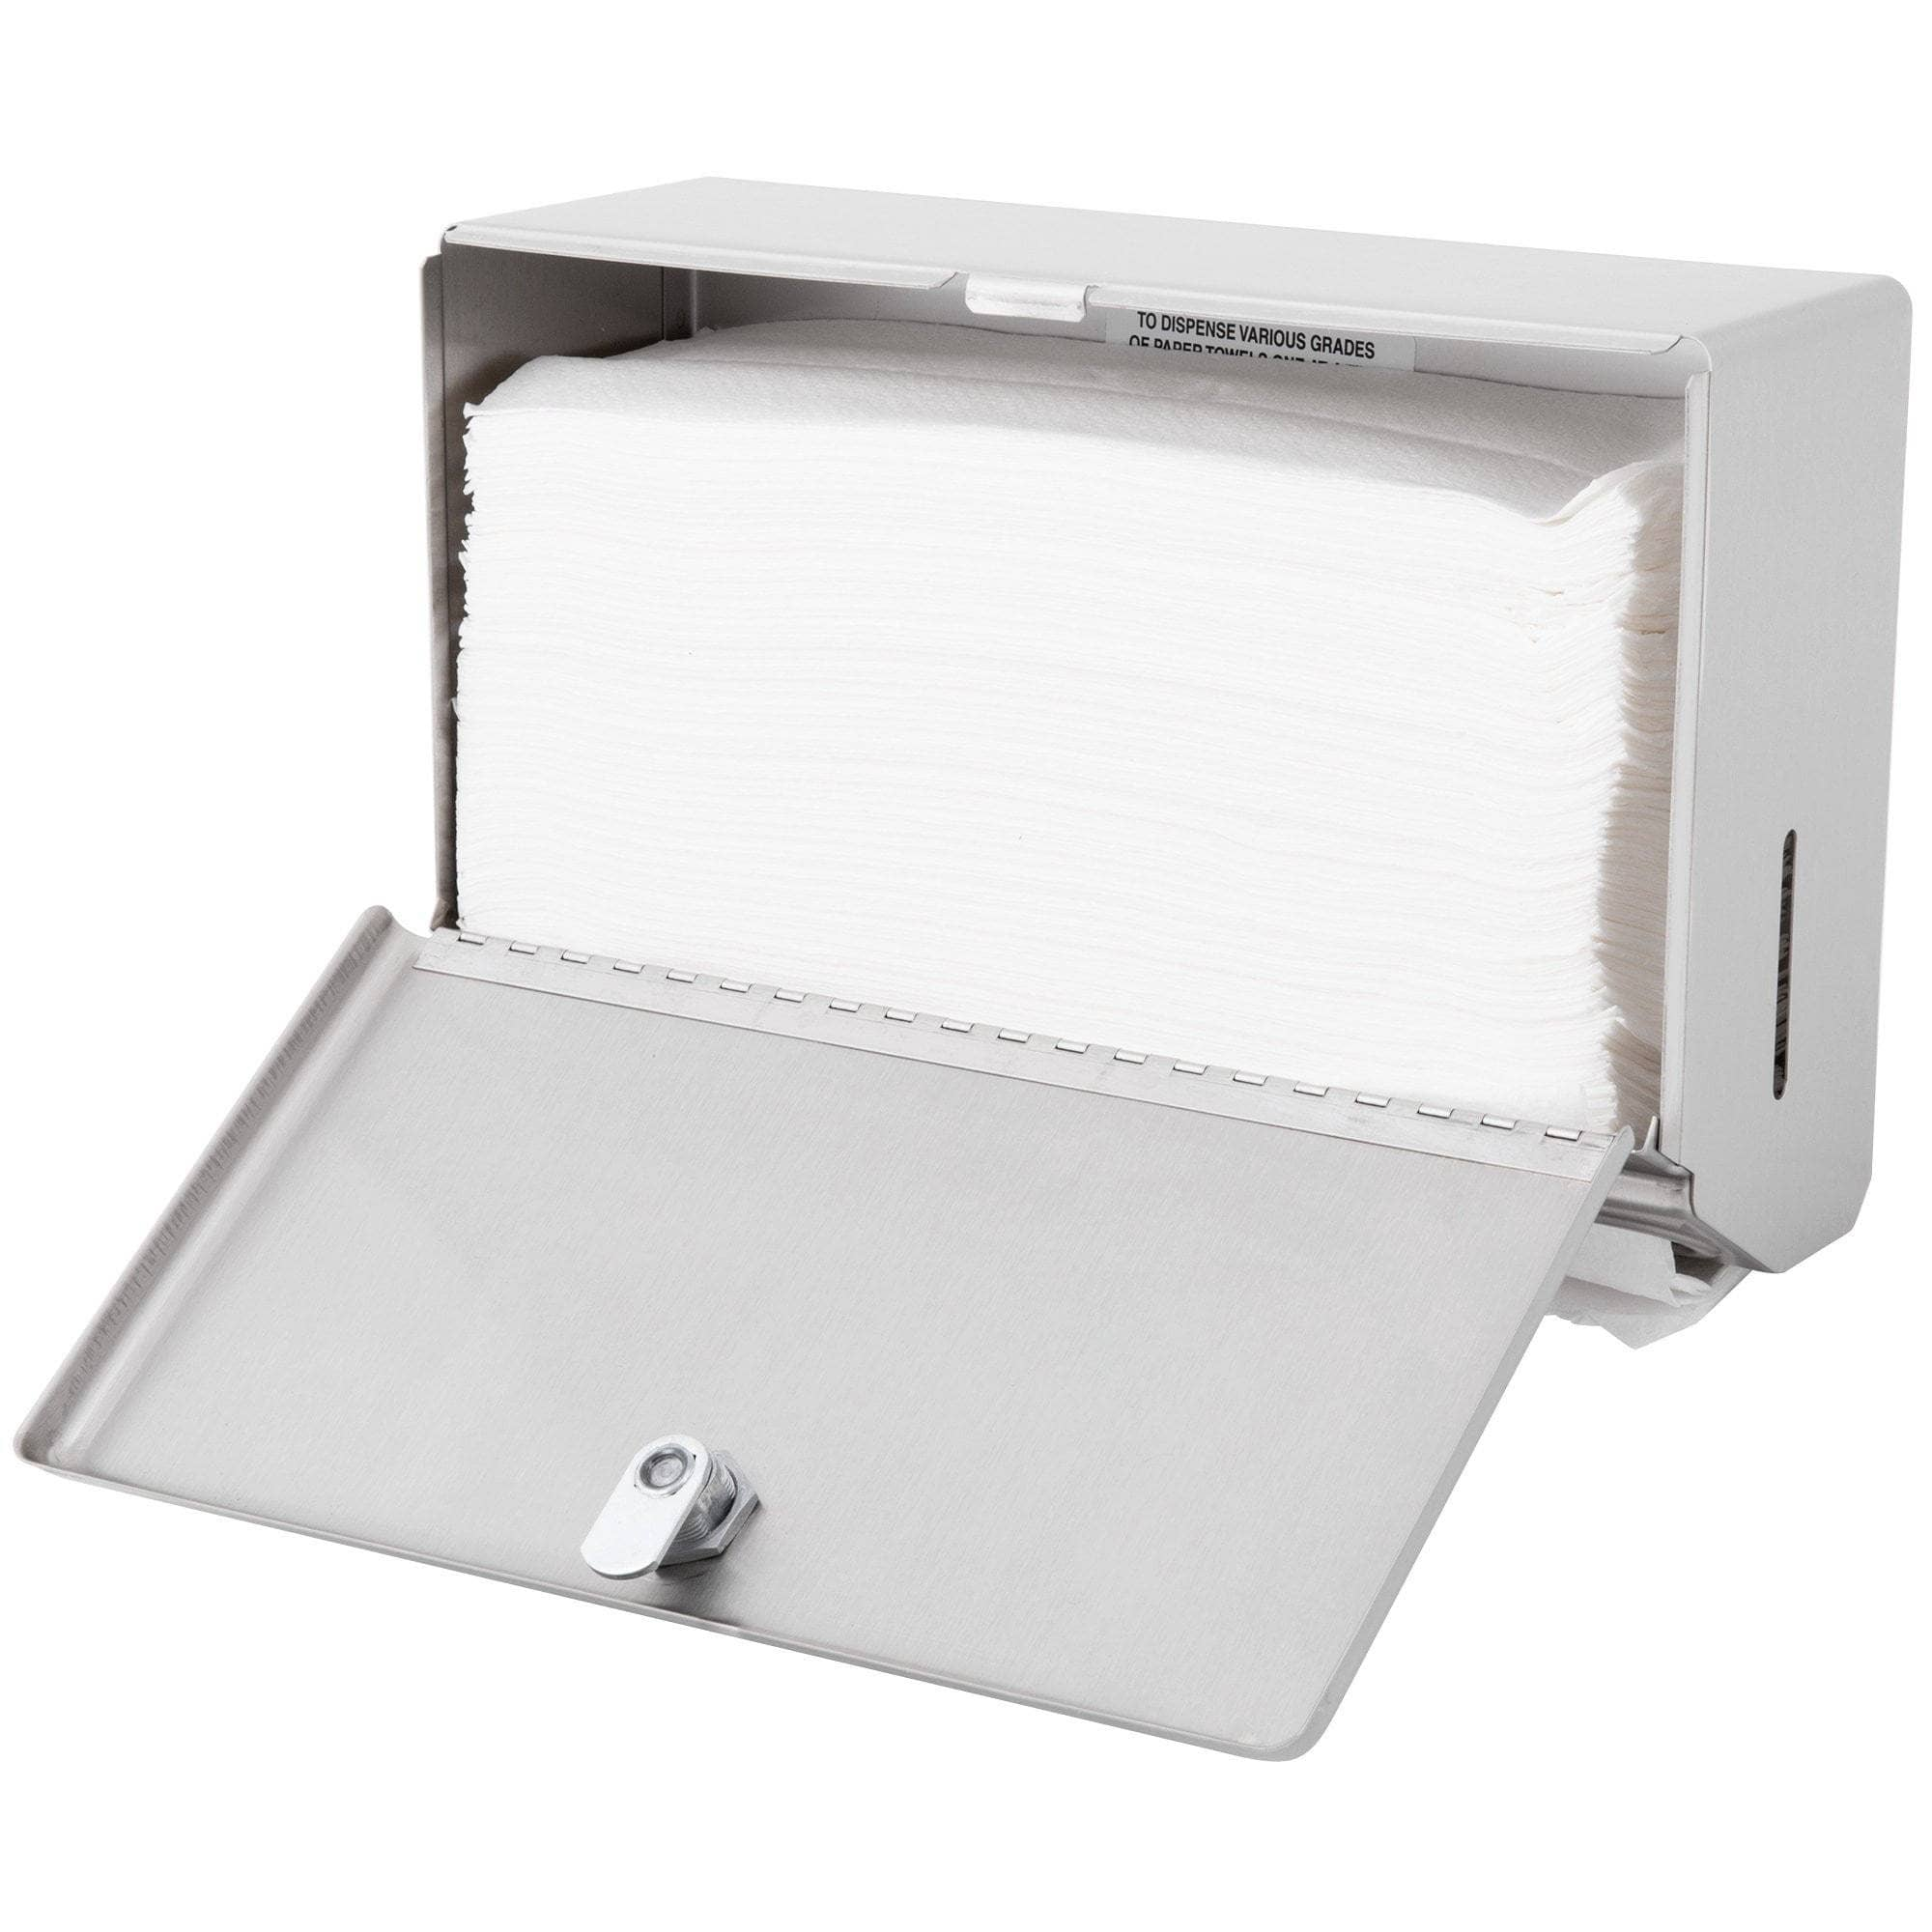 Bobrick B-2621 Commercial Paper Towel Dispenser, Surface-Mounted, Stainless Steel - TotalRestroom.com